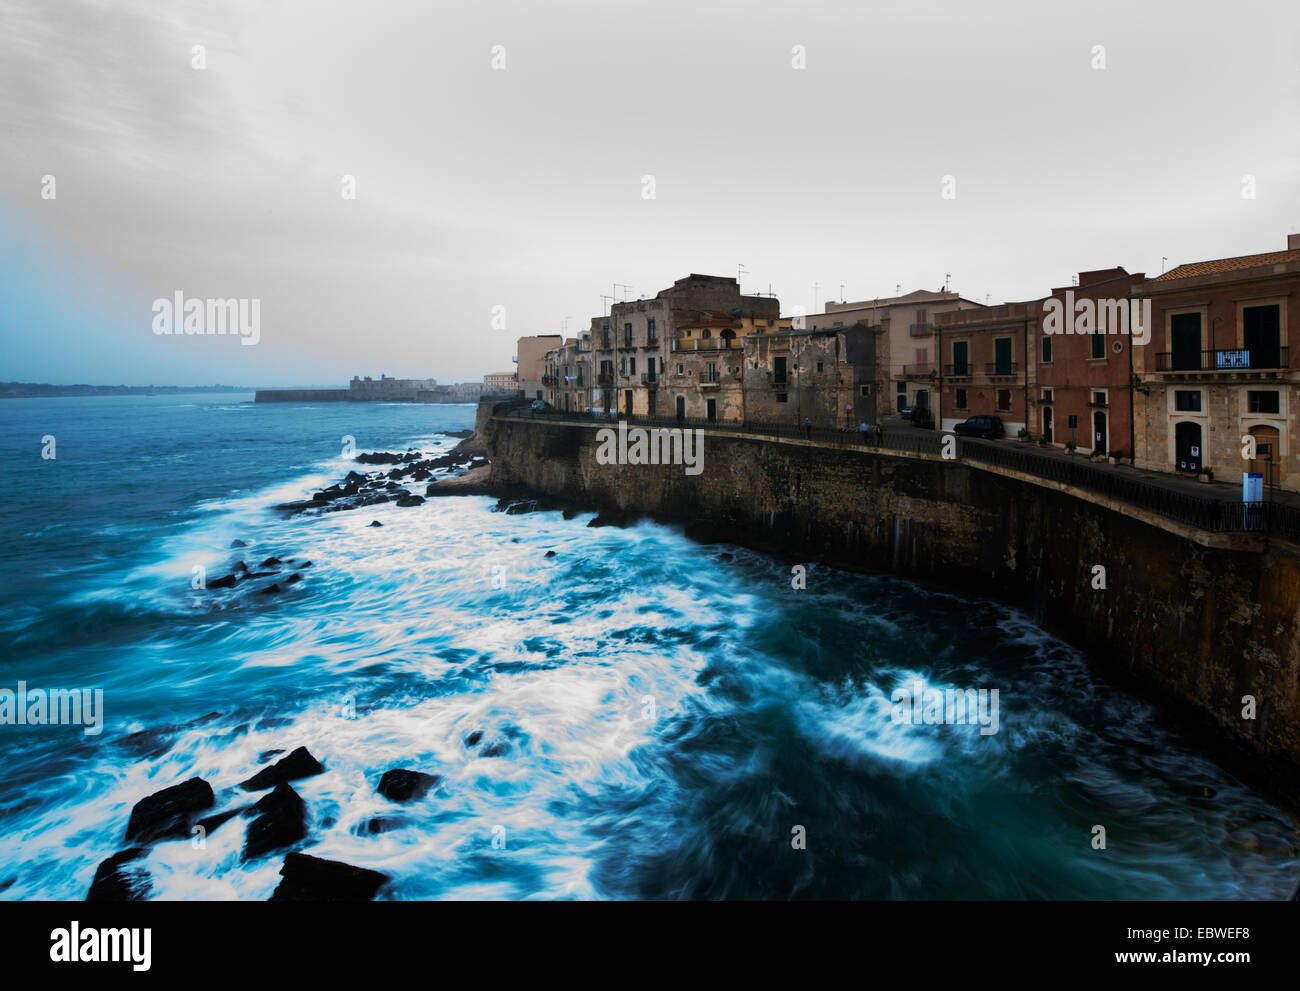 Syracuse's Ortygia island by the Ionian sea. - Stock Image